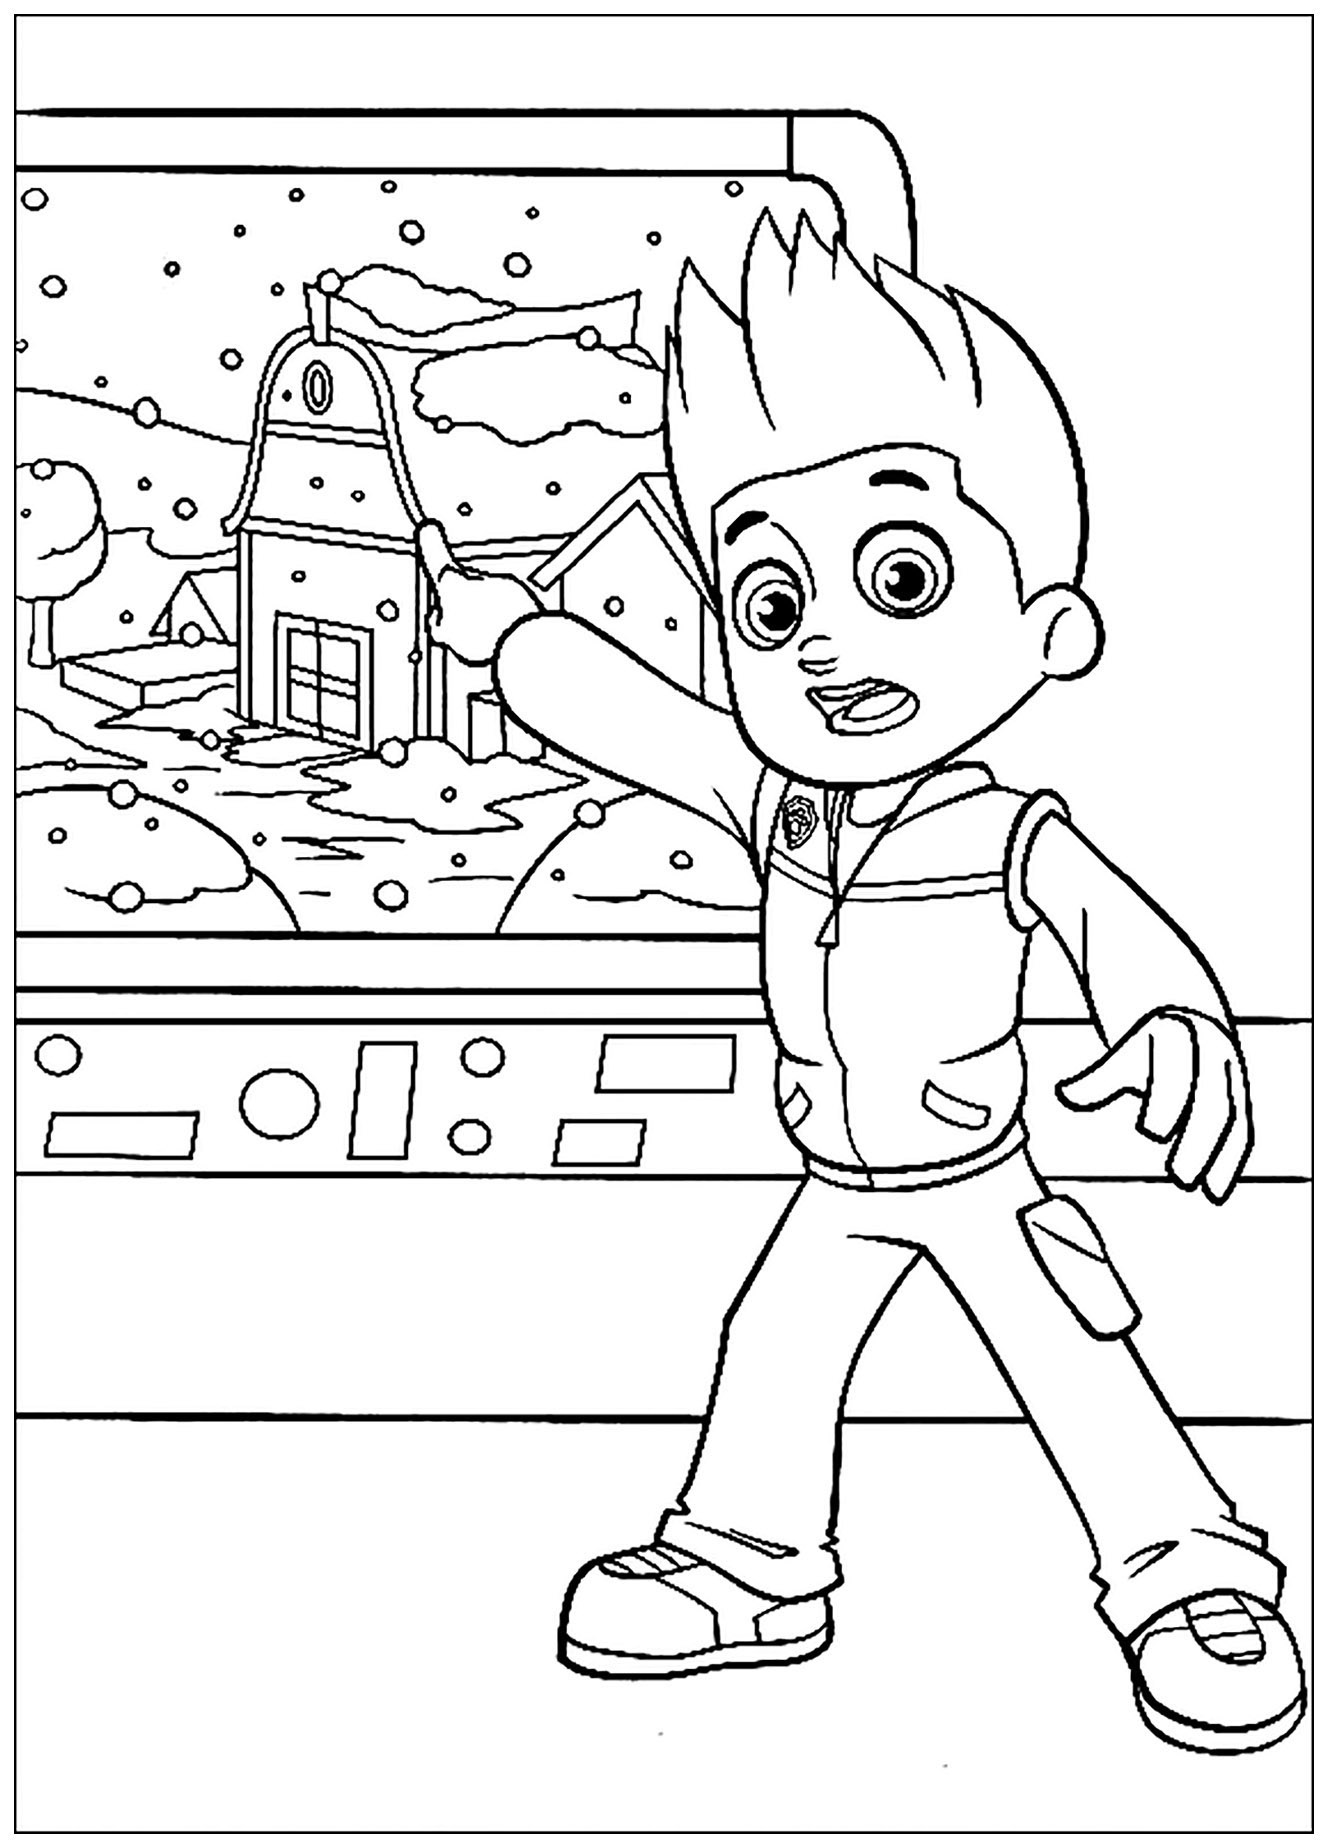 Paw Patrol coloring page to download for free